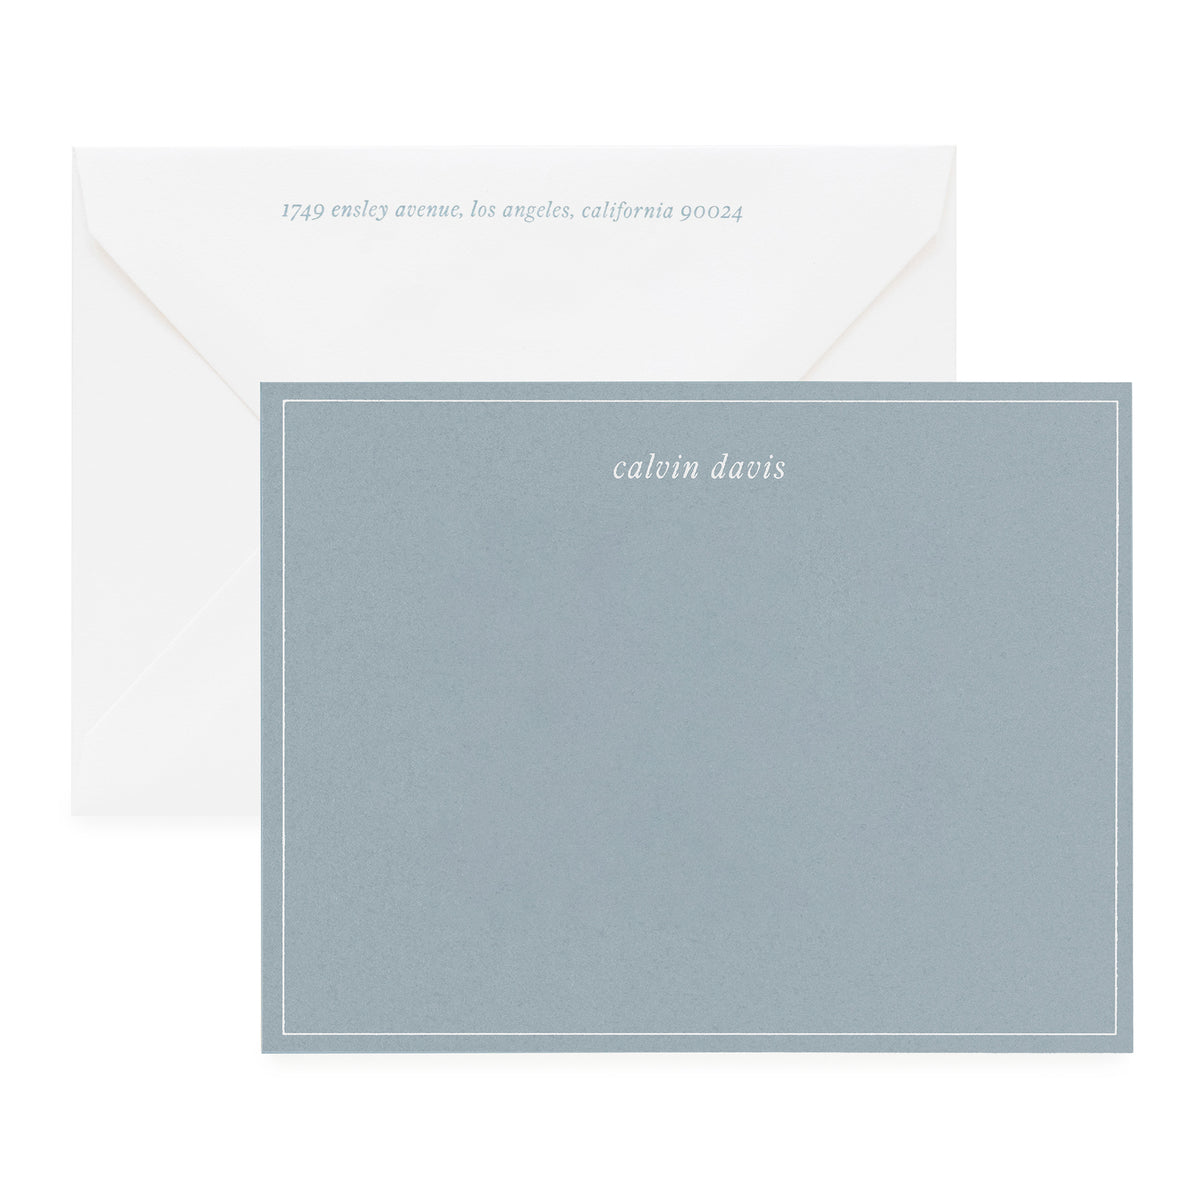 Slate blue stationery set with blue notecard with white ink and blue ink on white envelope